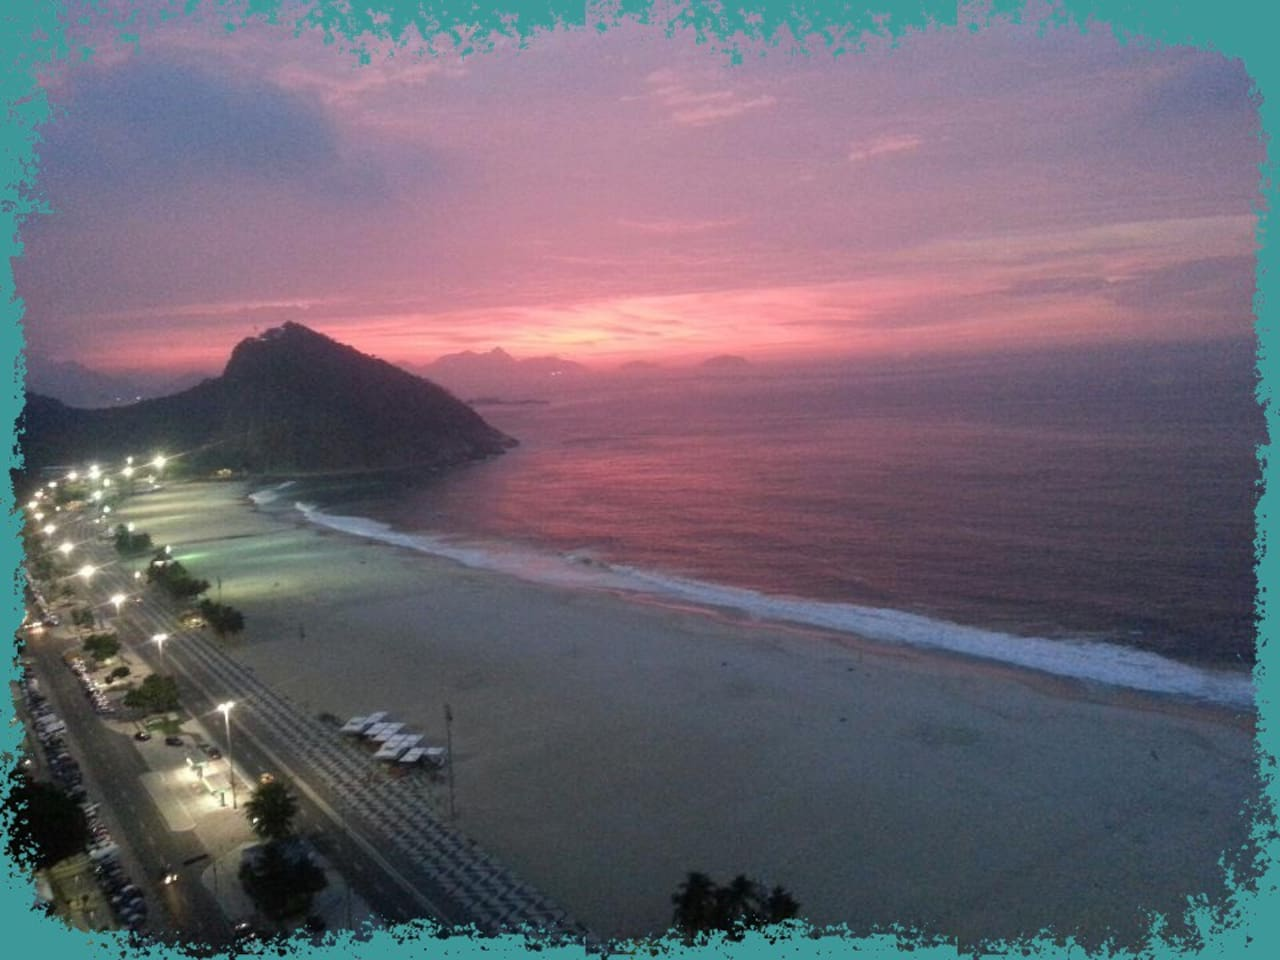 The picture shows the Leme beach from above, right before sunrise. And the flat stays just near the agglomeration of selling cabins we see on the sand.  The Anchieta street, where it is located, is the Leme Palace Hotel street - therefore the cabins.